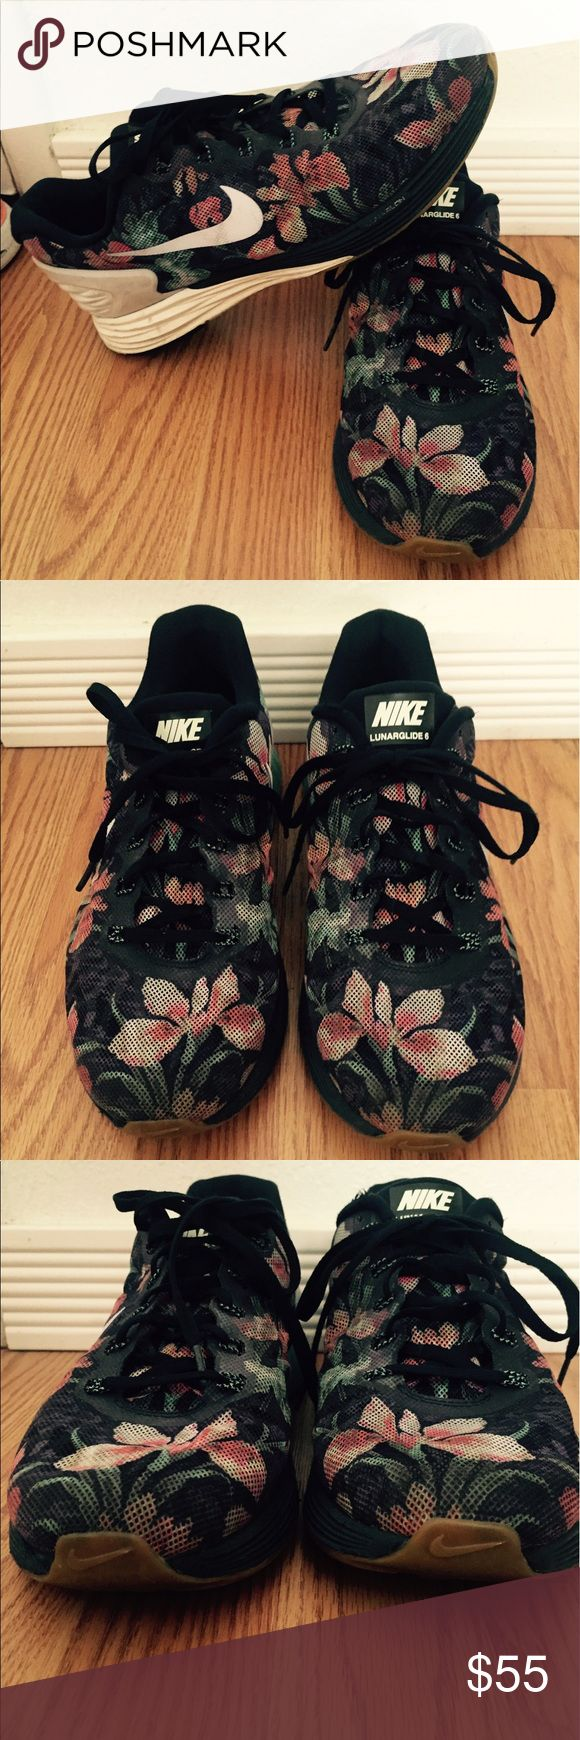 Floral print Nike LUNARGLIDE 6 Floral print Nike LUNARGLIDE 6. Love love love this print!! As you can see I have way too many shoes so if you love a cool print and nikes, then these are perfect 🌸🌺🌸🌺🌸 great used condition.  Womens 10, converts to about a men's 9 since they are 27 cm. Nike Shoes Athletic Shoes